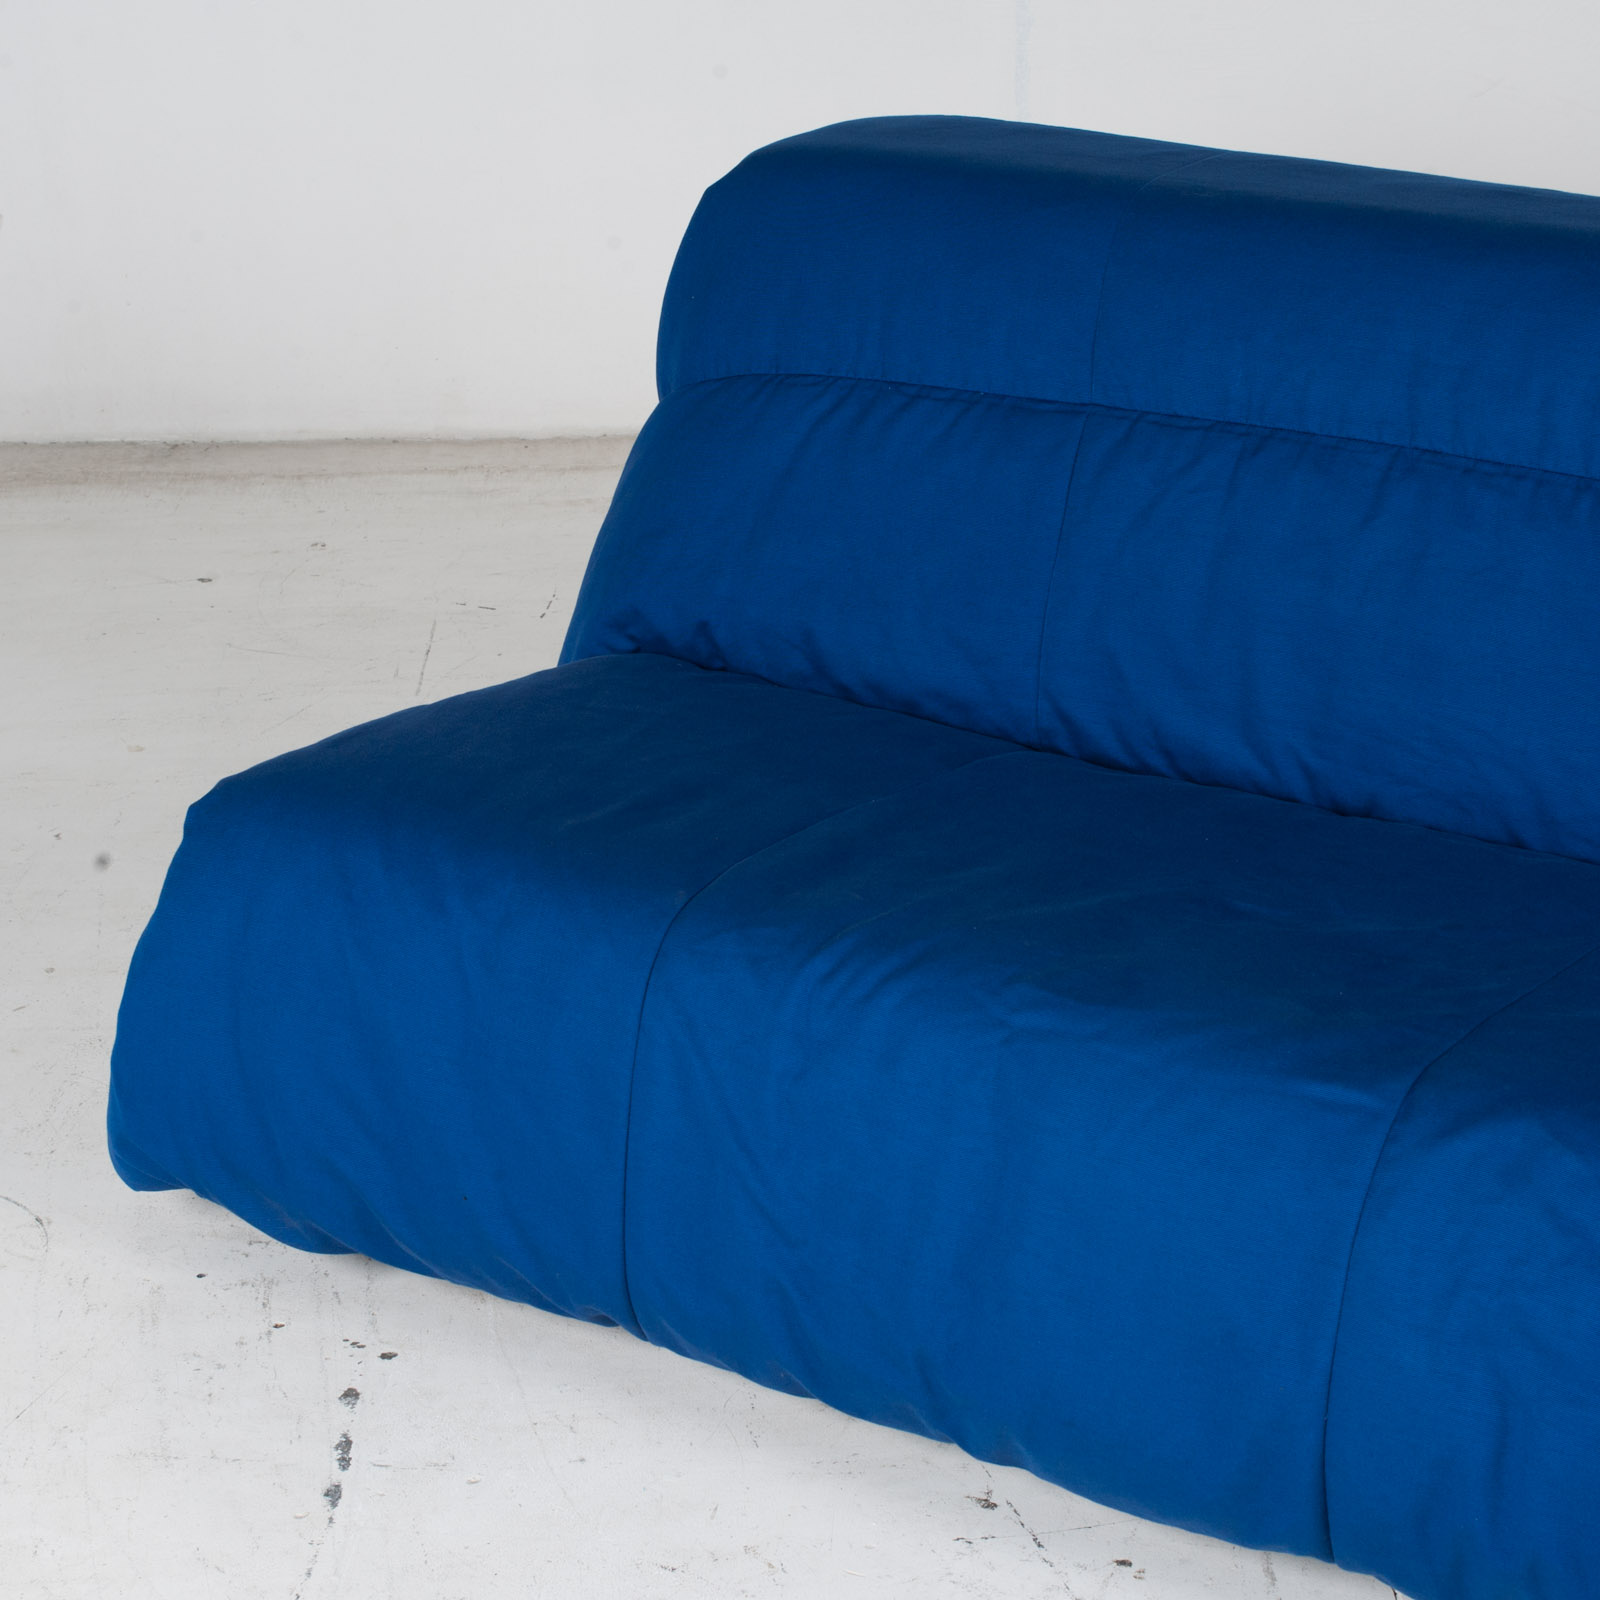 Sofa Bed By Ligne Roset In Blue Upholstery, 1960s, France5